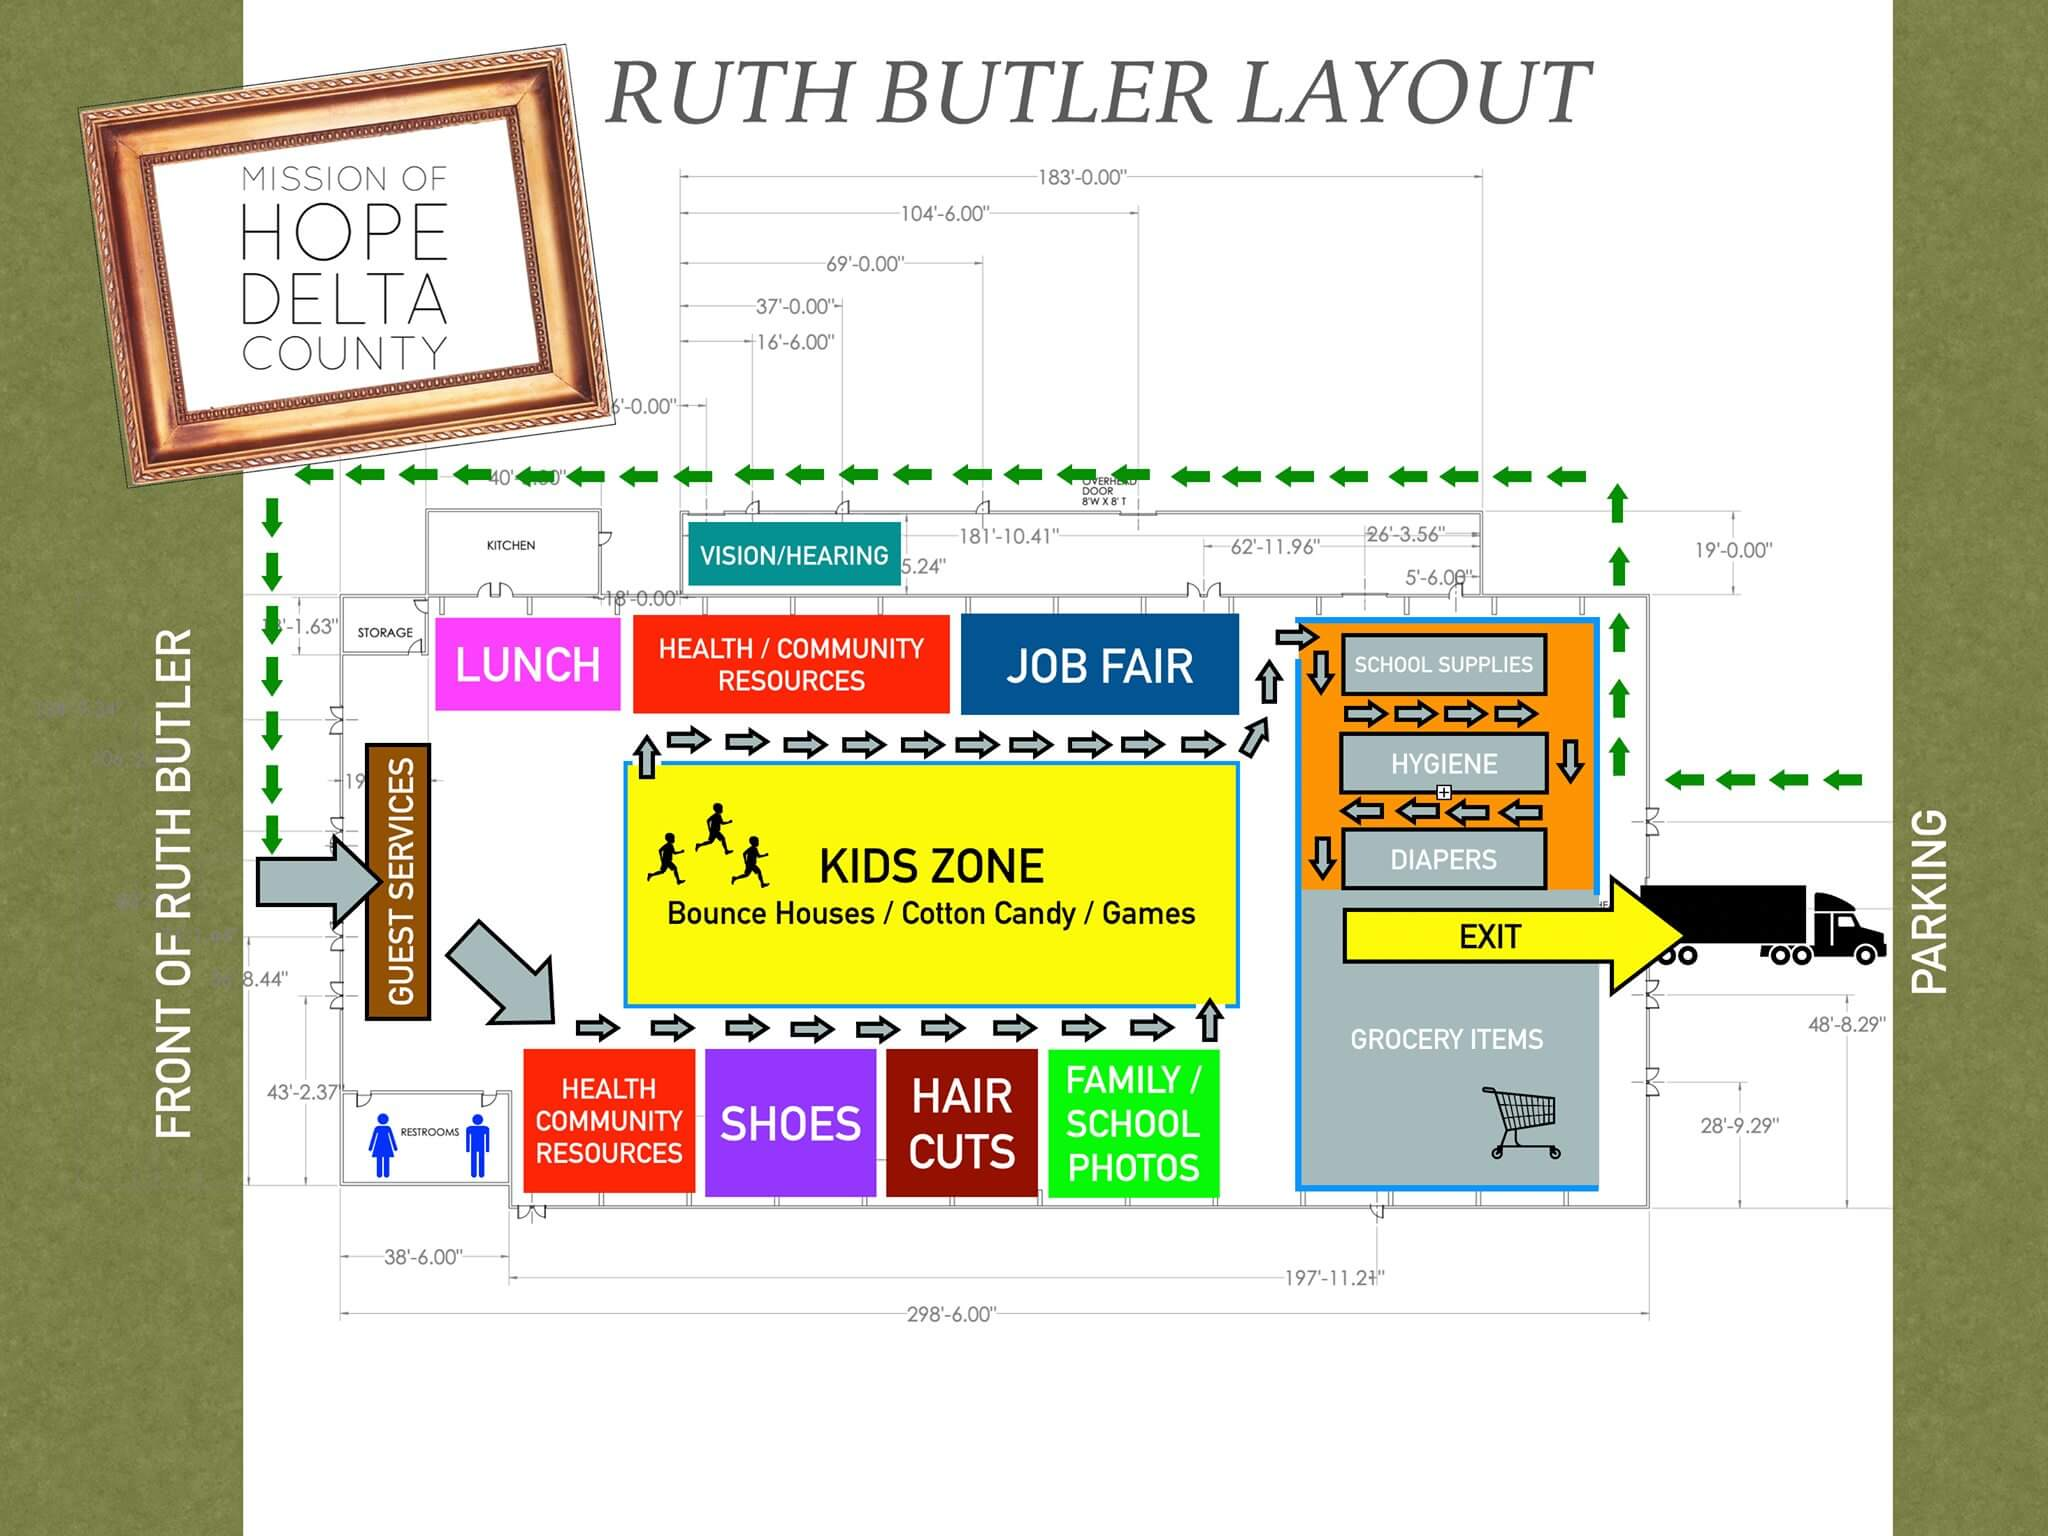 Mission of Hope Delta County Ruth Butler building Layout from the front of the building guest services, restrooms, health community resources, shoes, haircuts, family.school photos, kisds zone (bounce houses, cotton candy, games), lunch, health/community resources, job fair, school supplies, hygiene, diapers, grocery items, and then exit to the parking loss.